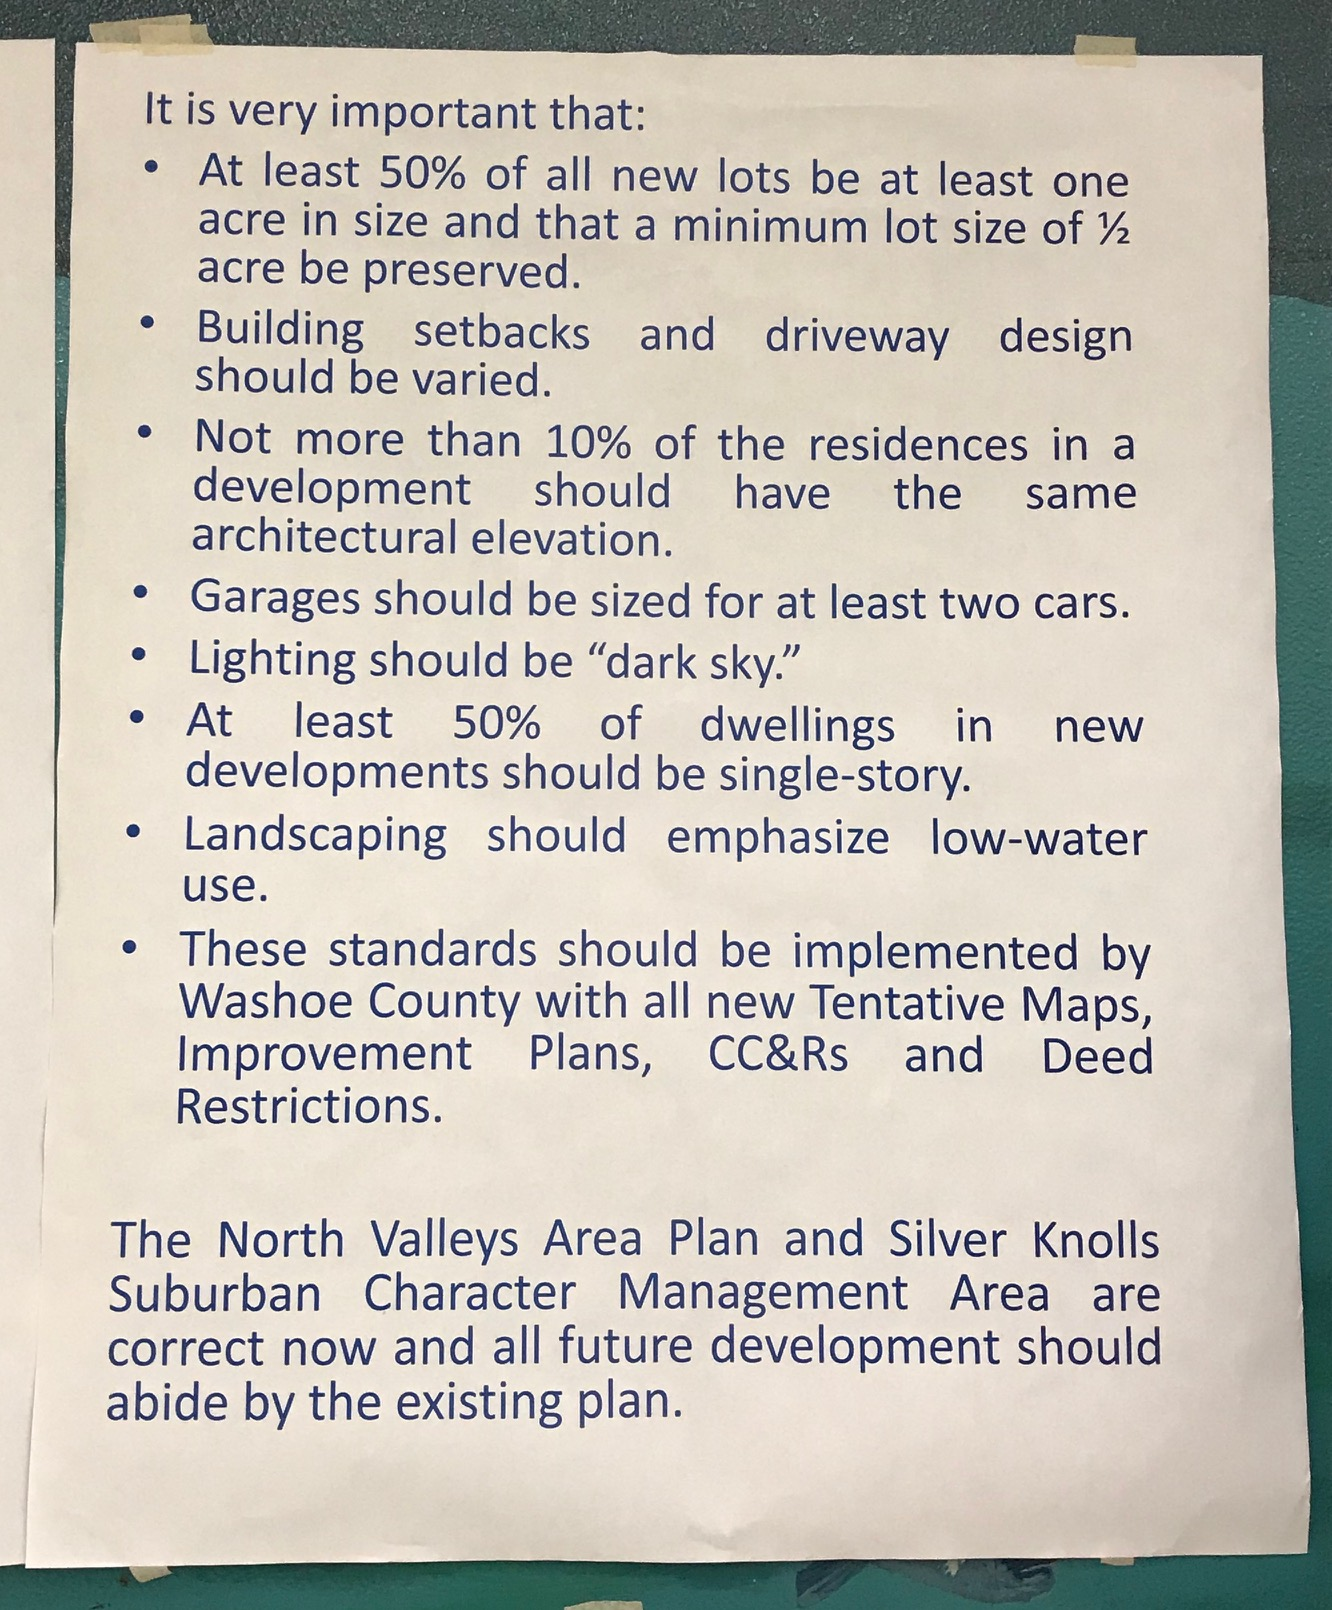 Visioning workshop page 4